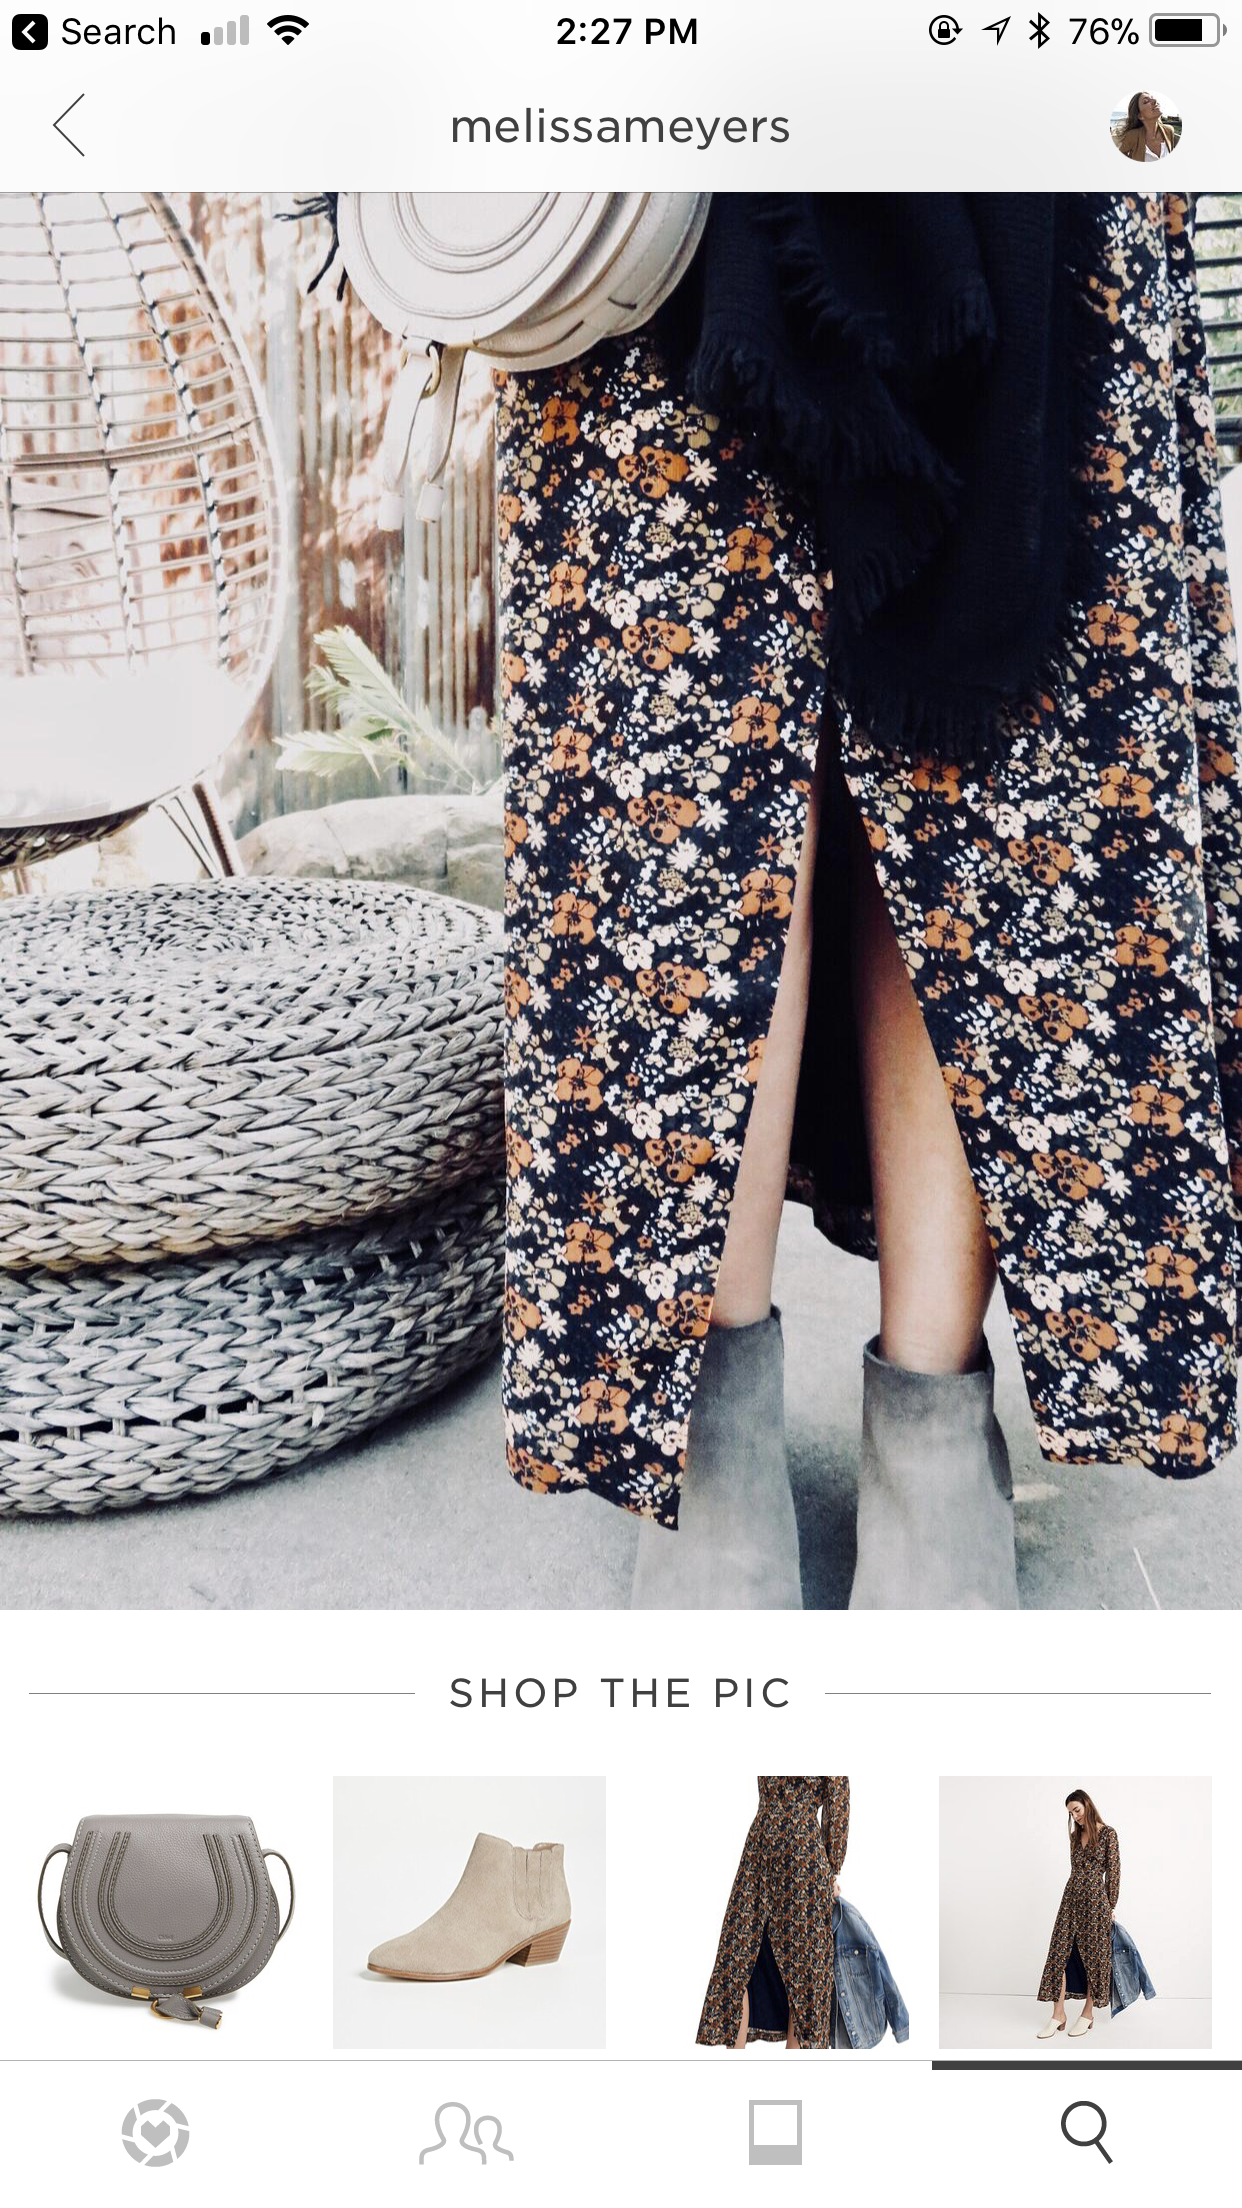 - 5. Whenever I post a picture you can screenshot the photo and it will send it directly to the app for you to shop! You can also sign up for LIKEtoKNOW.it emails and my outfits or product picks will be sent directly to your inbox! It's that easy!